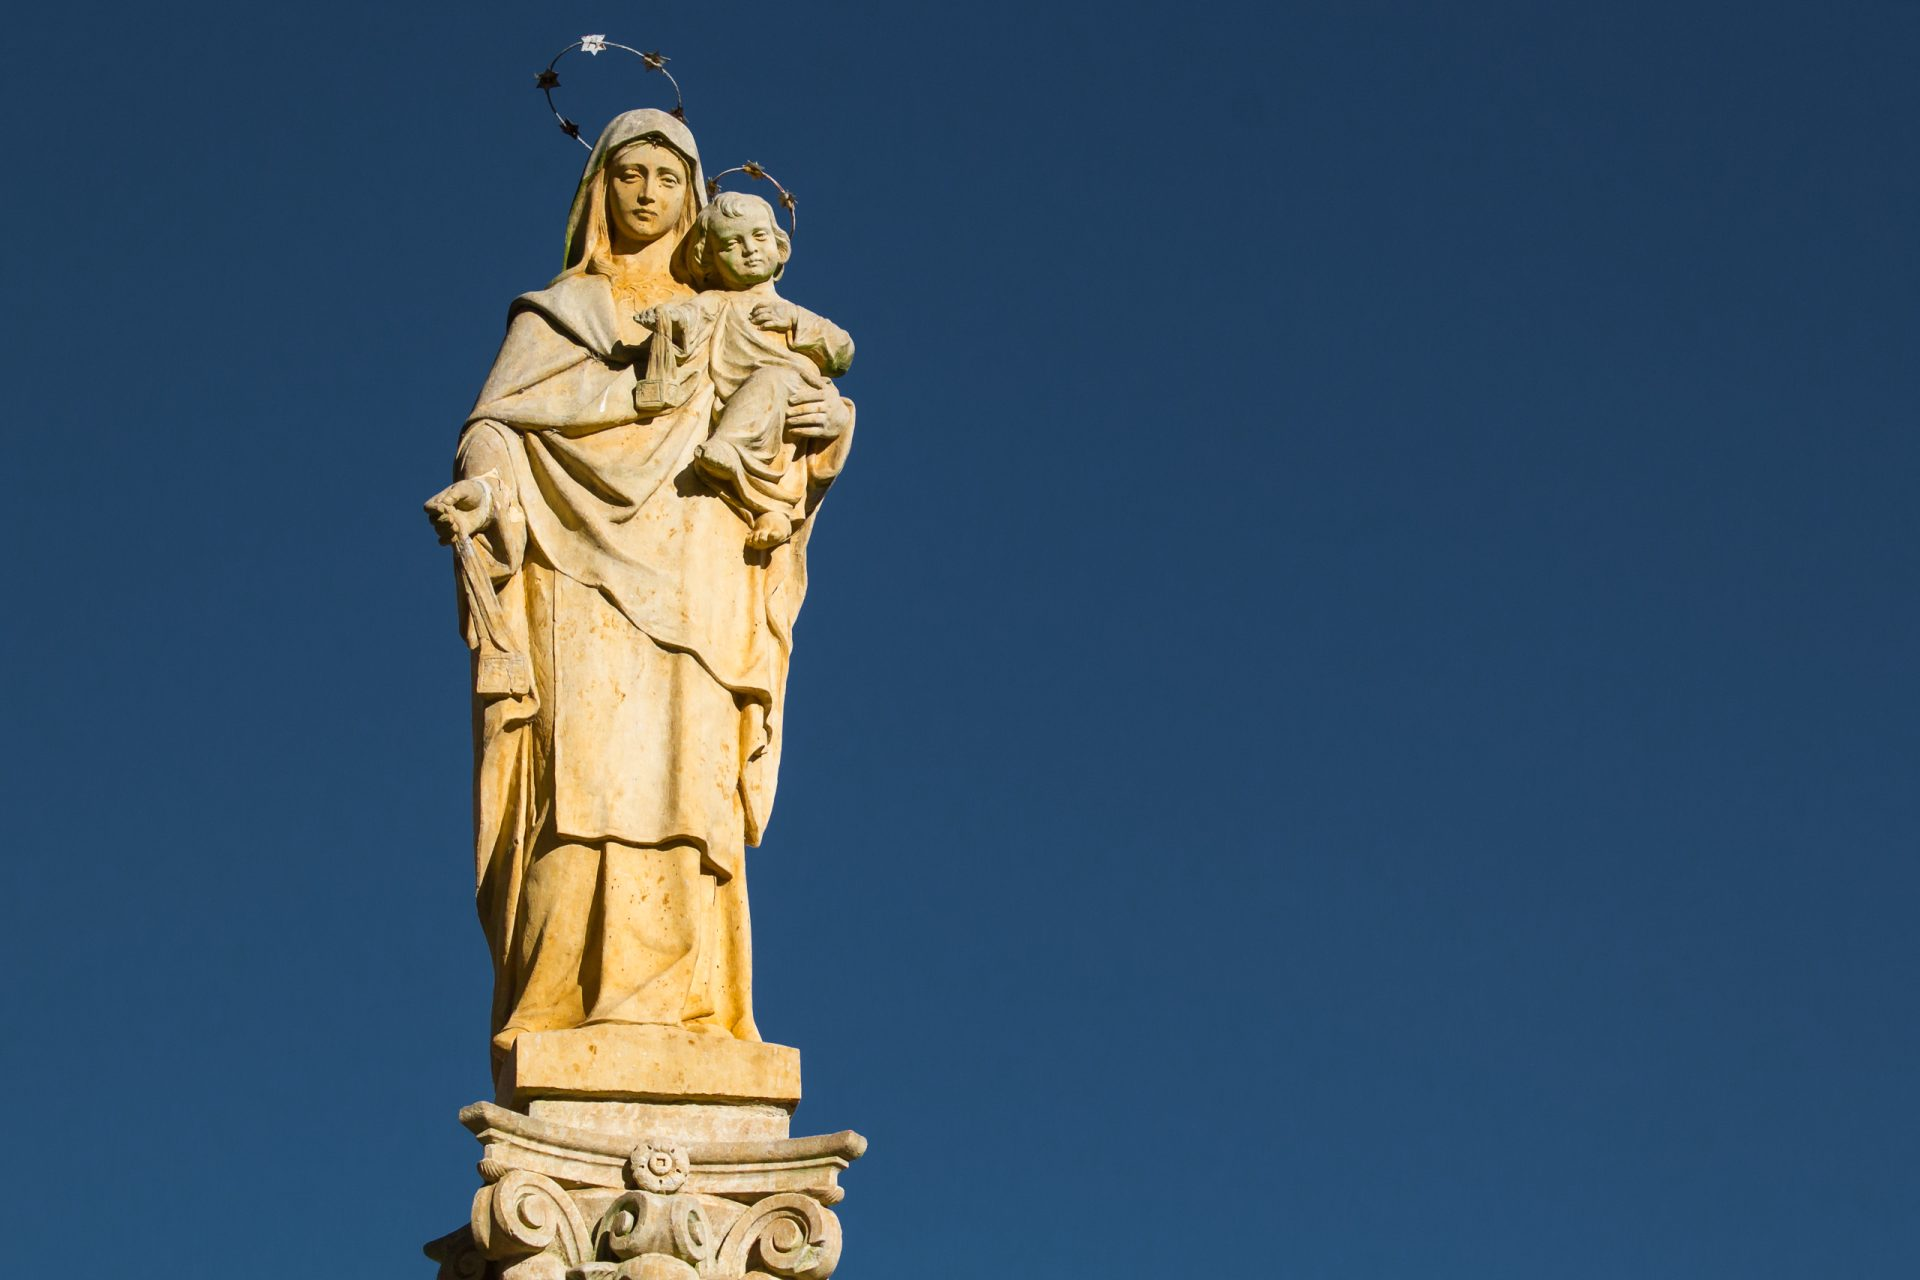 A story of miraculous salvation from Mary's intercession